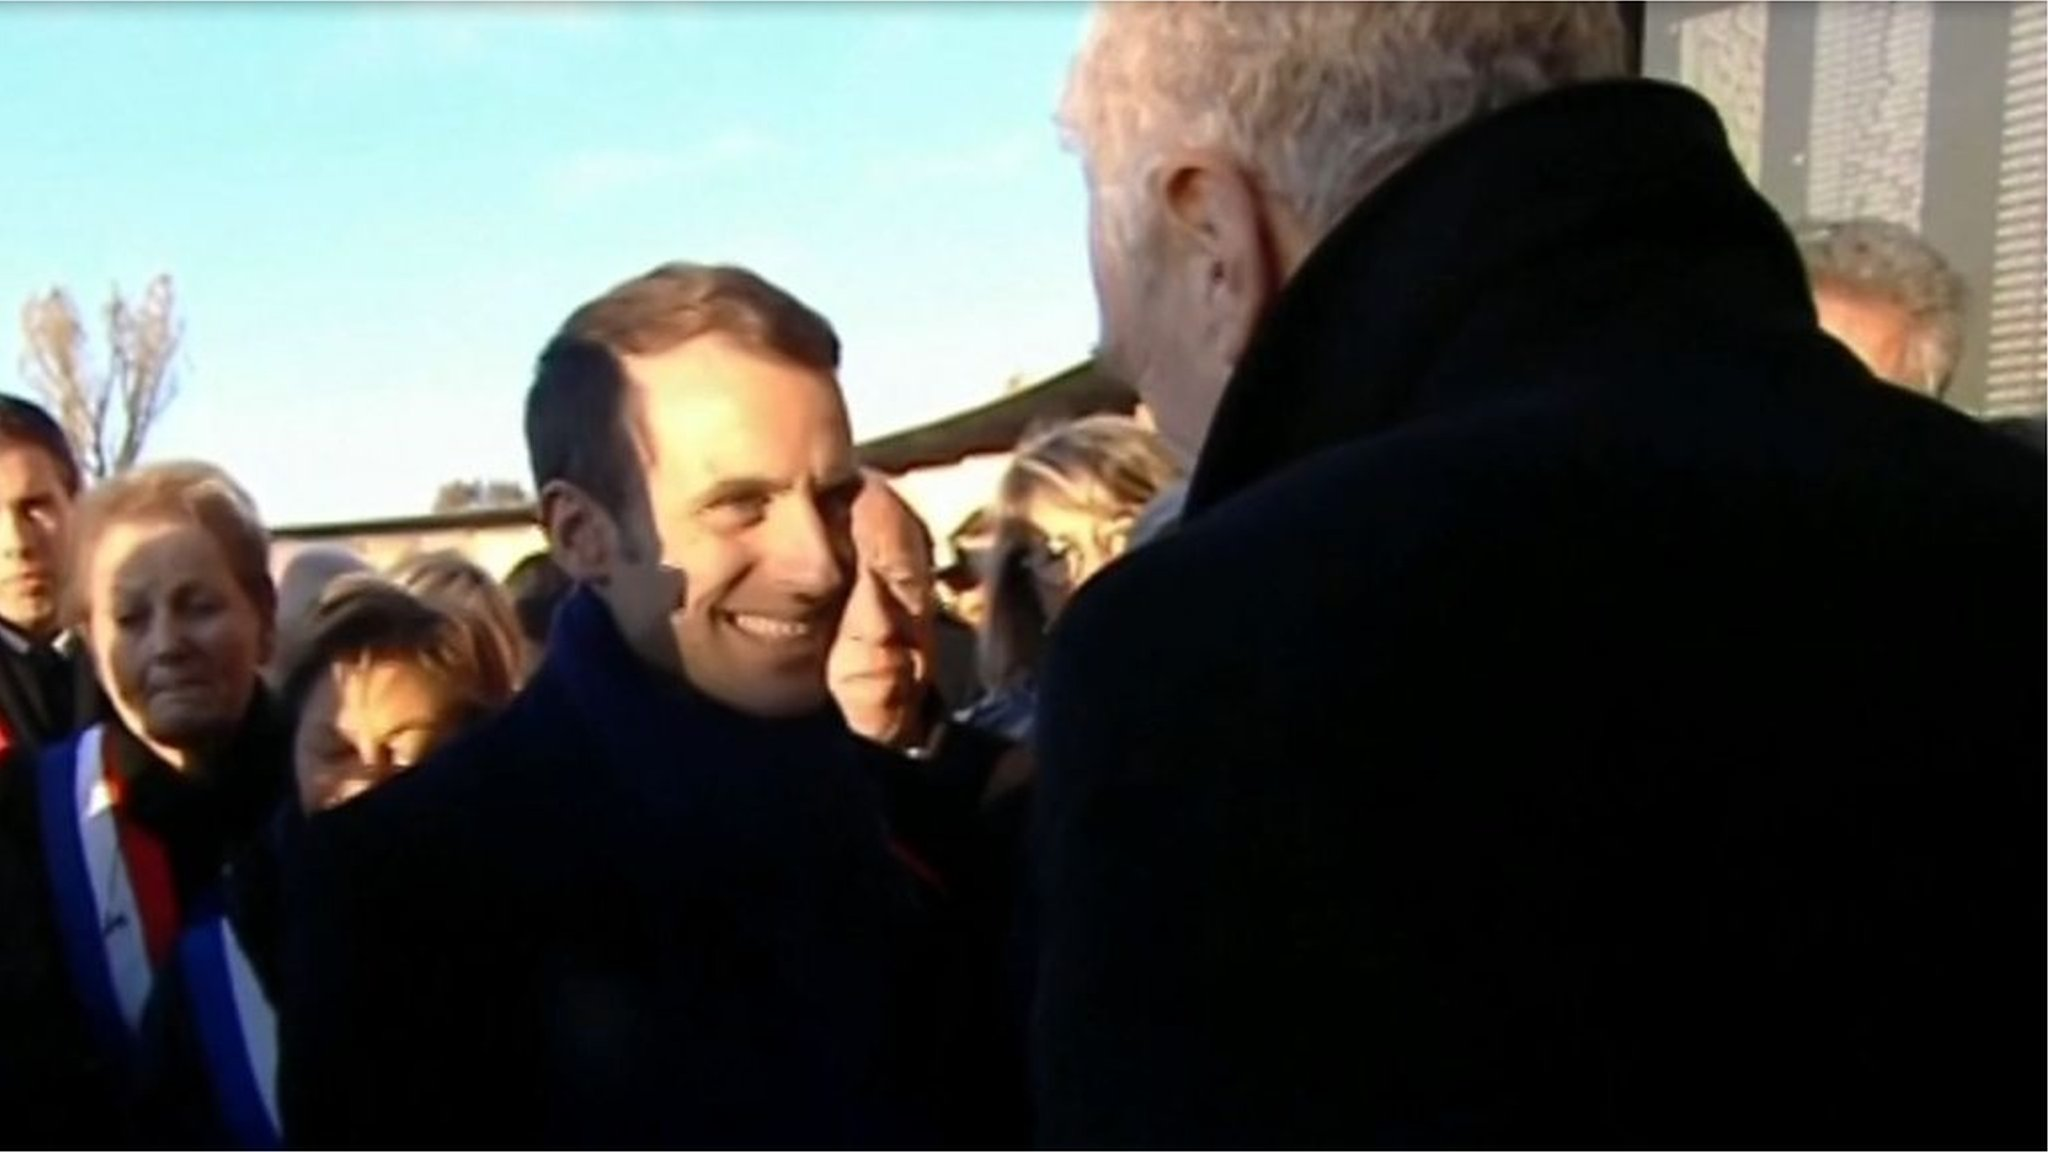 President Macron salutes BBC man's 'beautiful' WW1 story